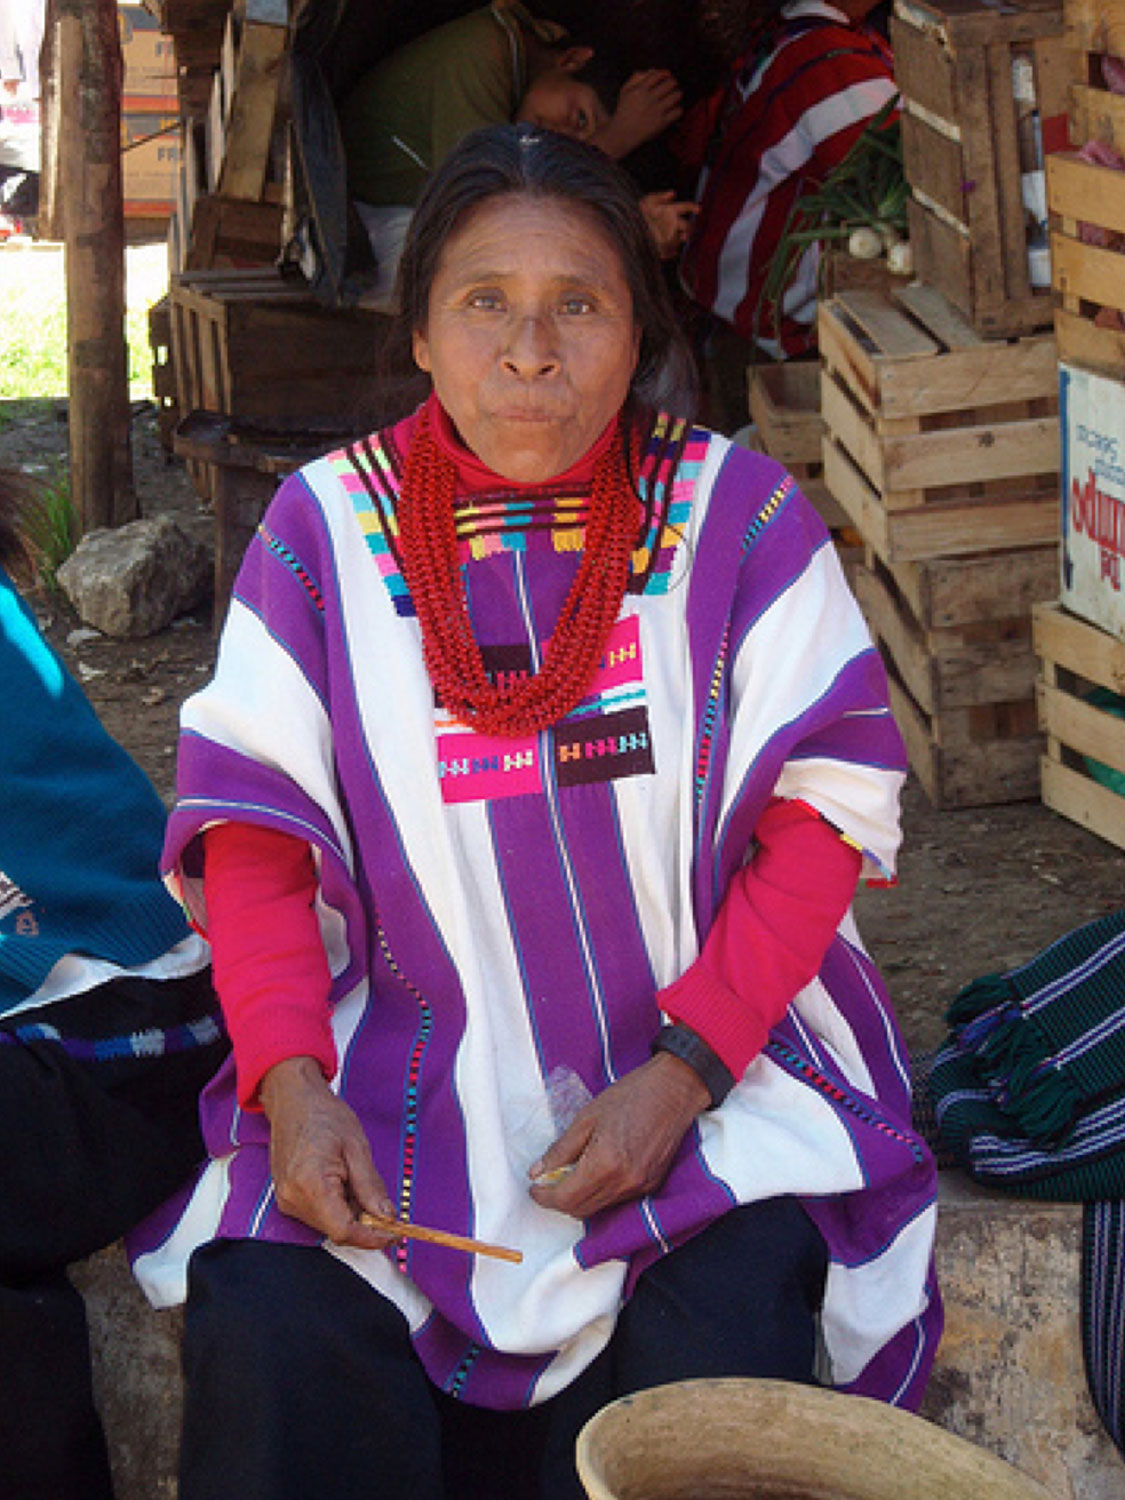 Oxchuc woman in huipil (Mayan traditional dress). I borrowed this photo from the internet. Author unknown.